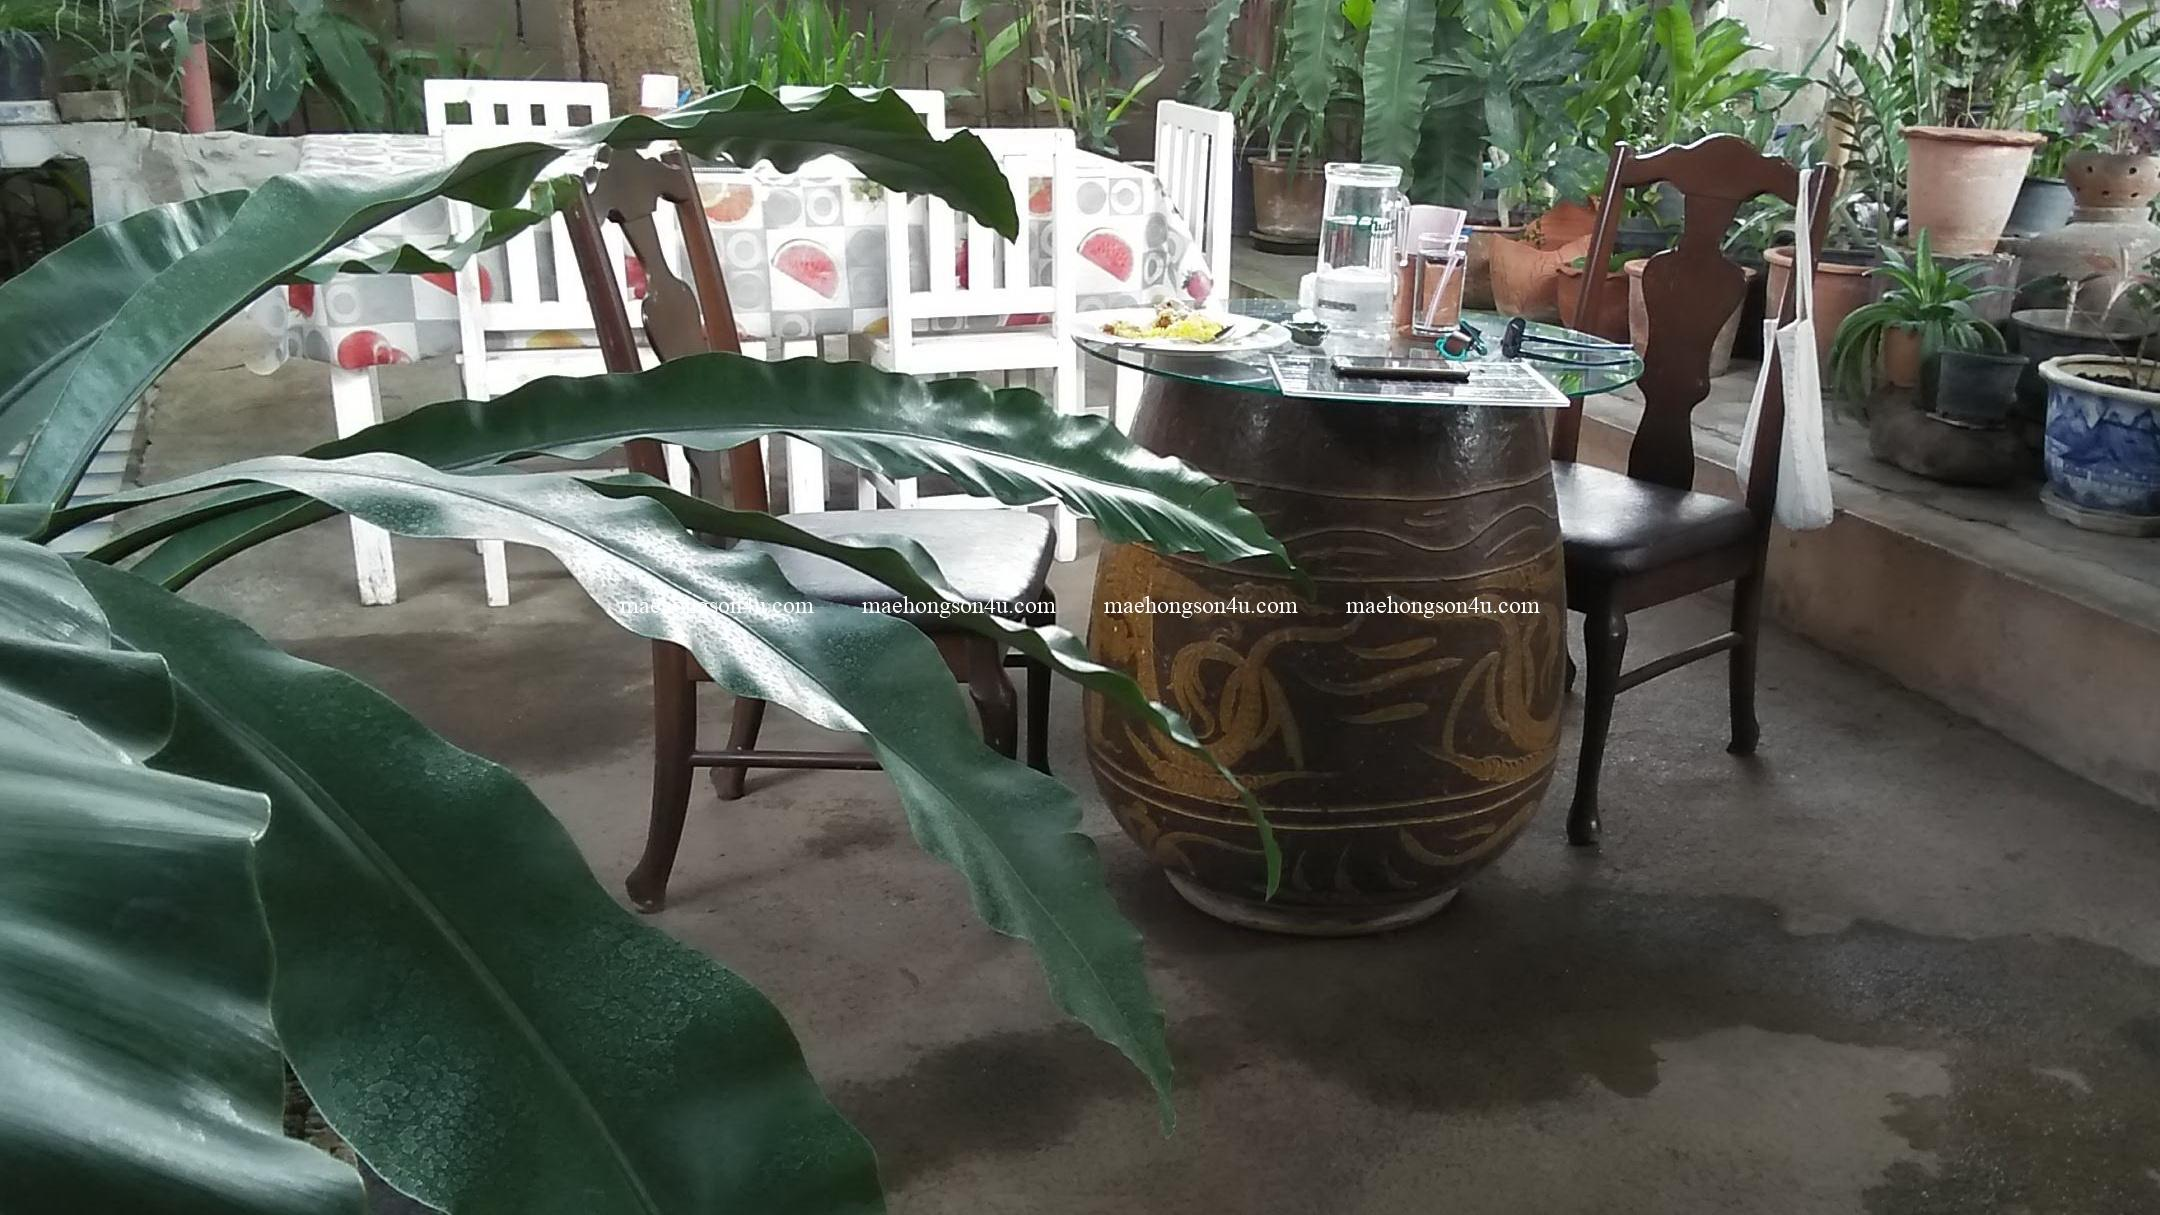 mae rong son large water jar table